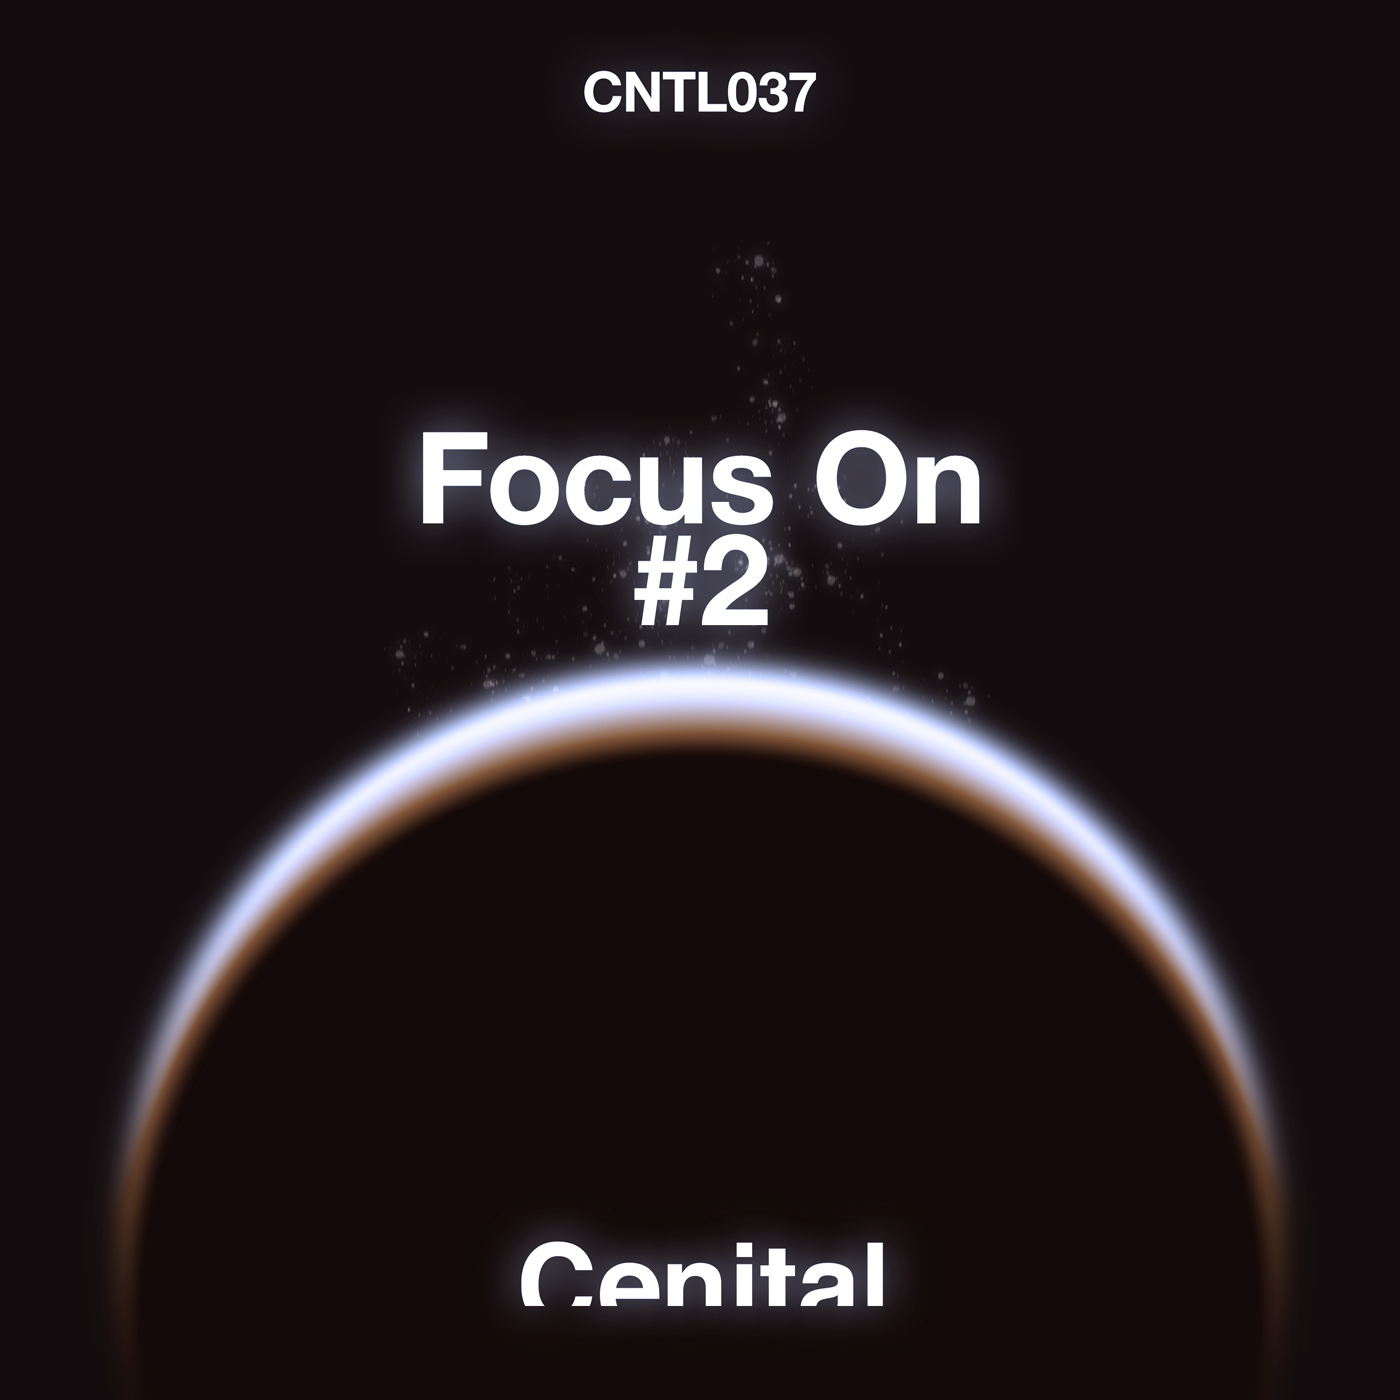 Focus On 2